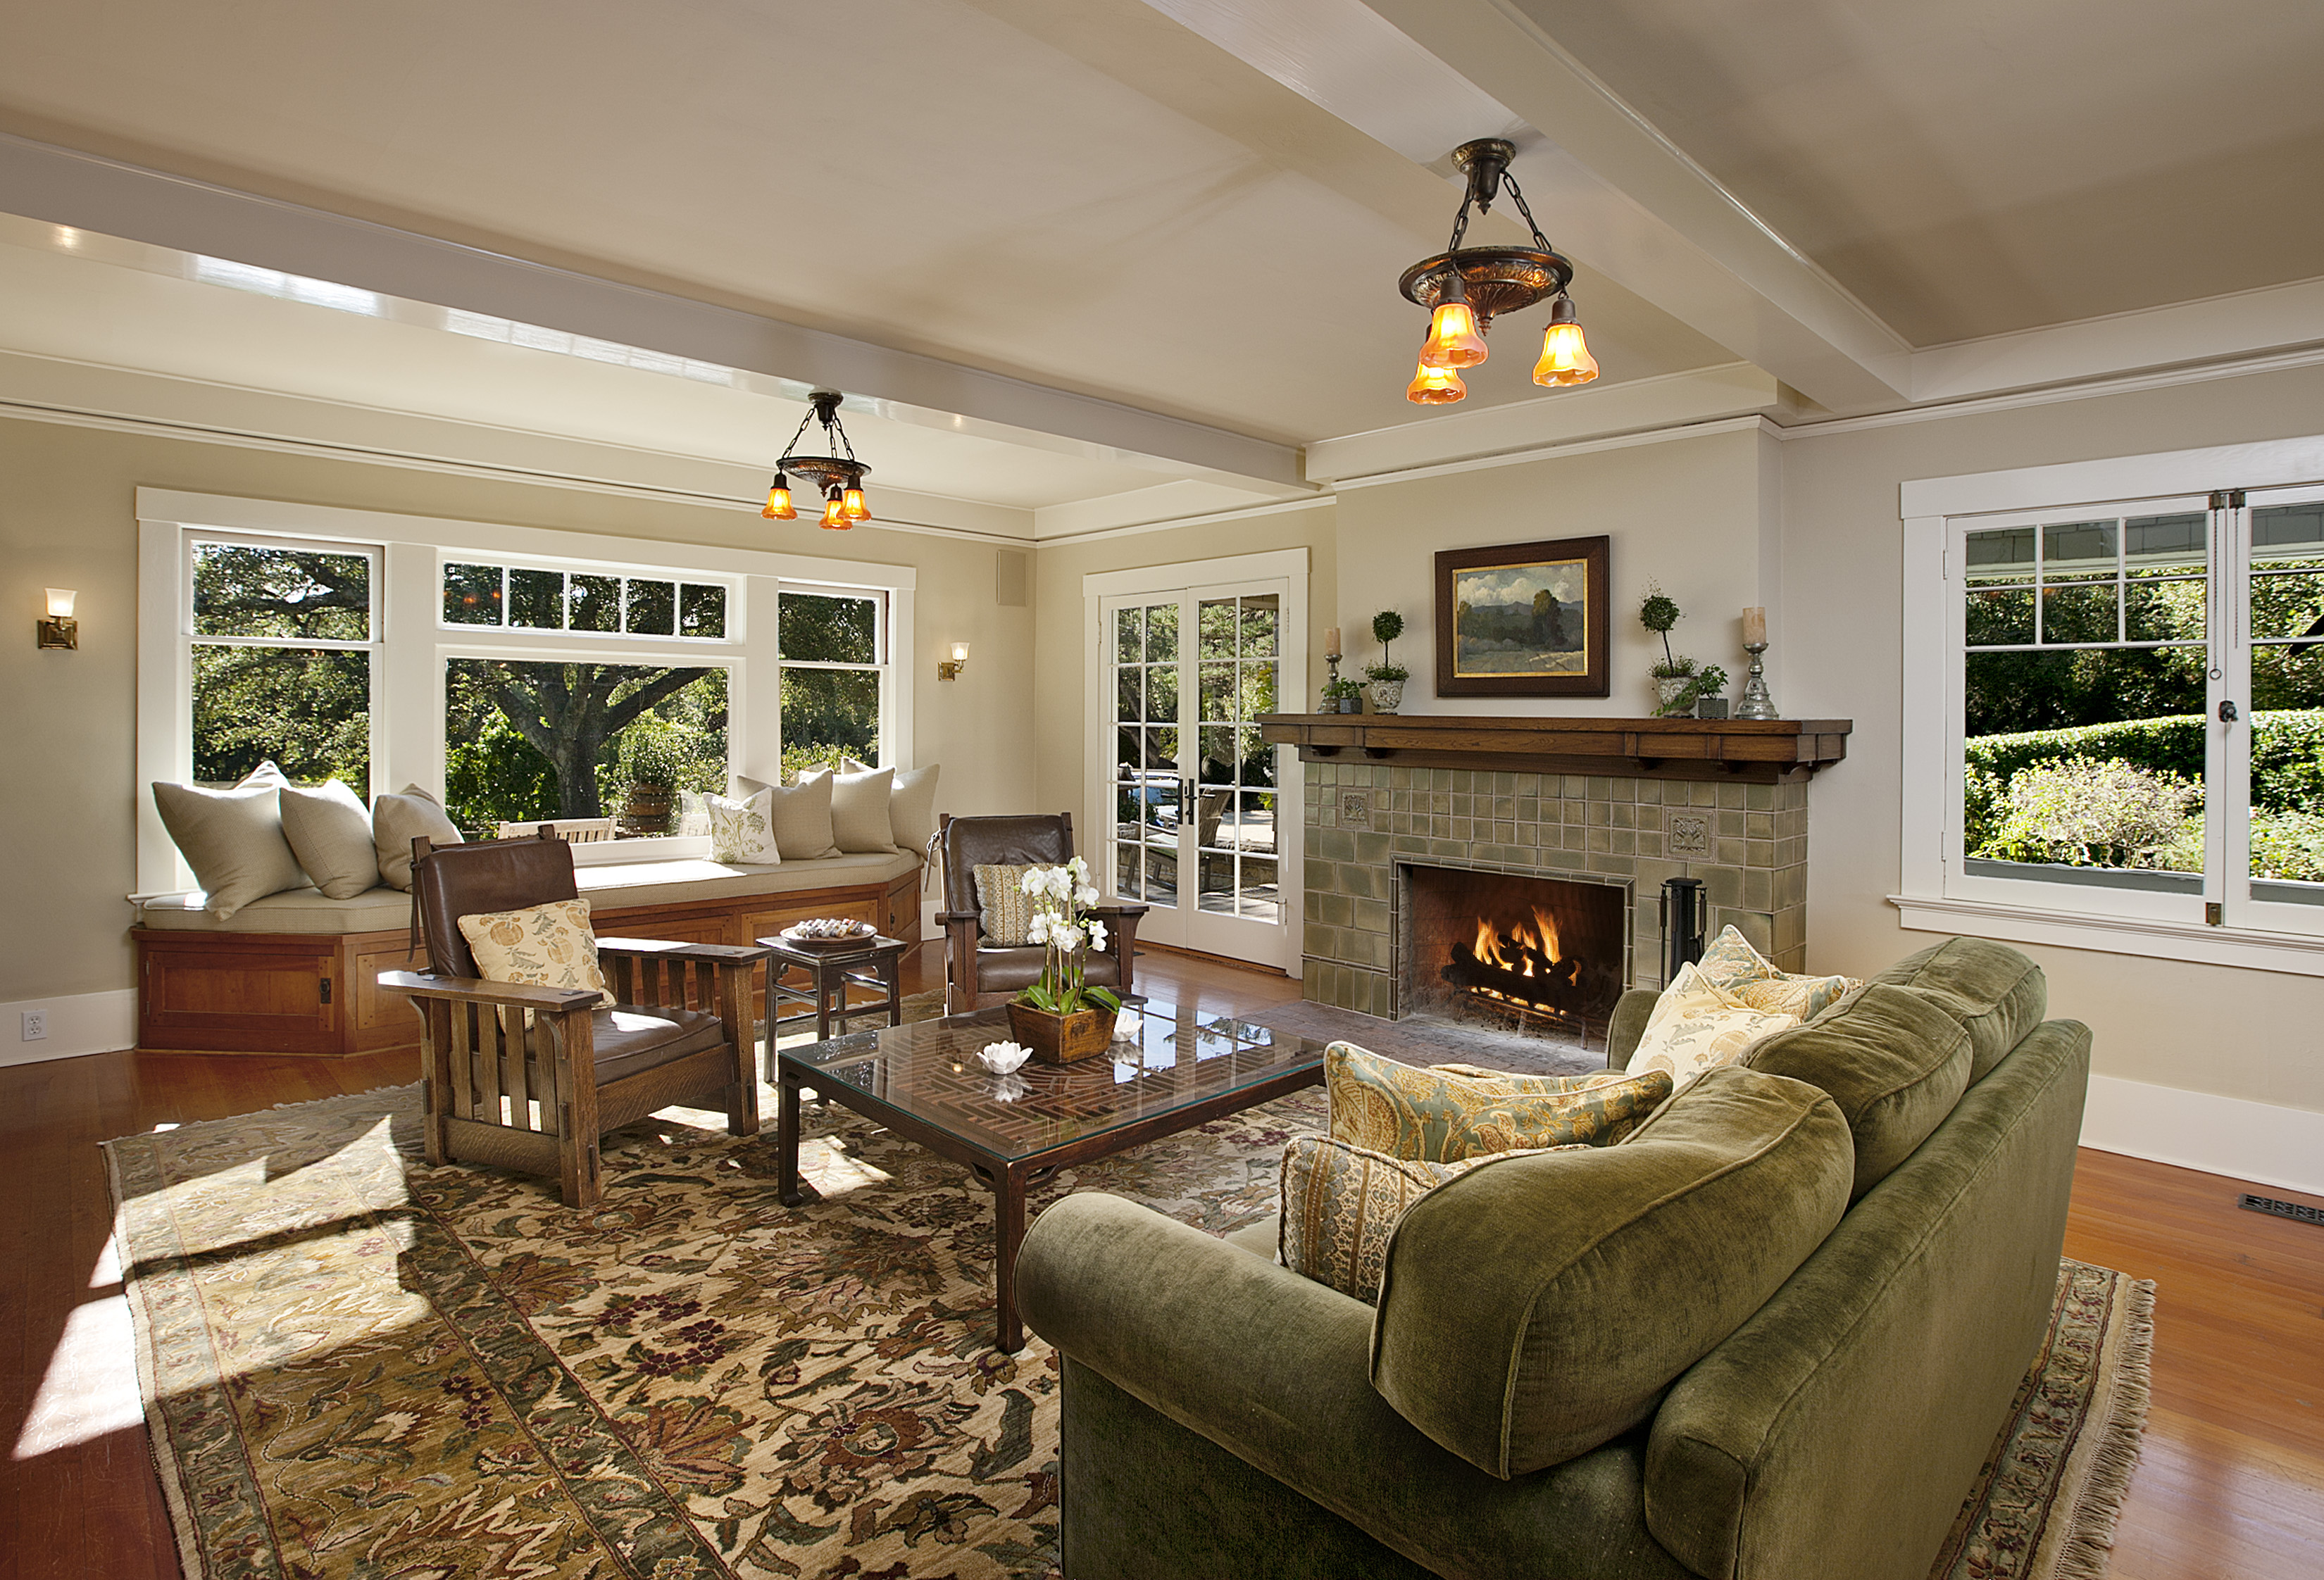 popular home styles for 2012